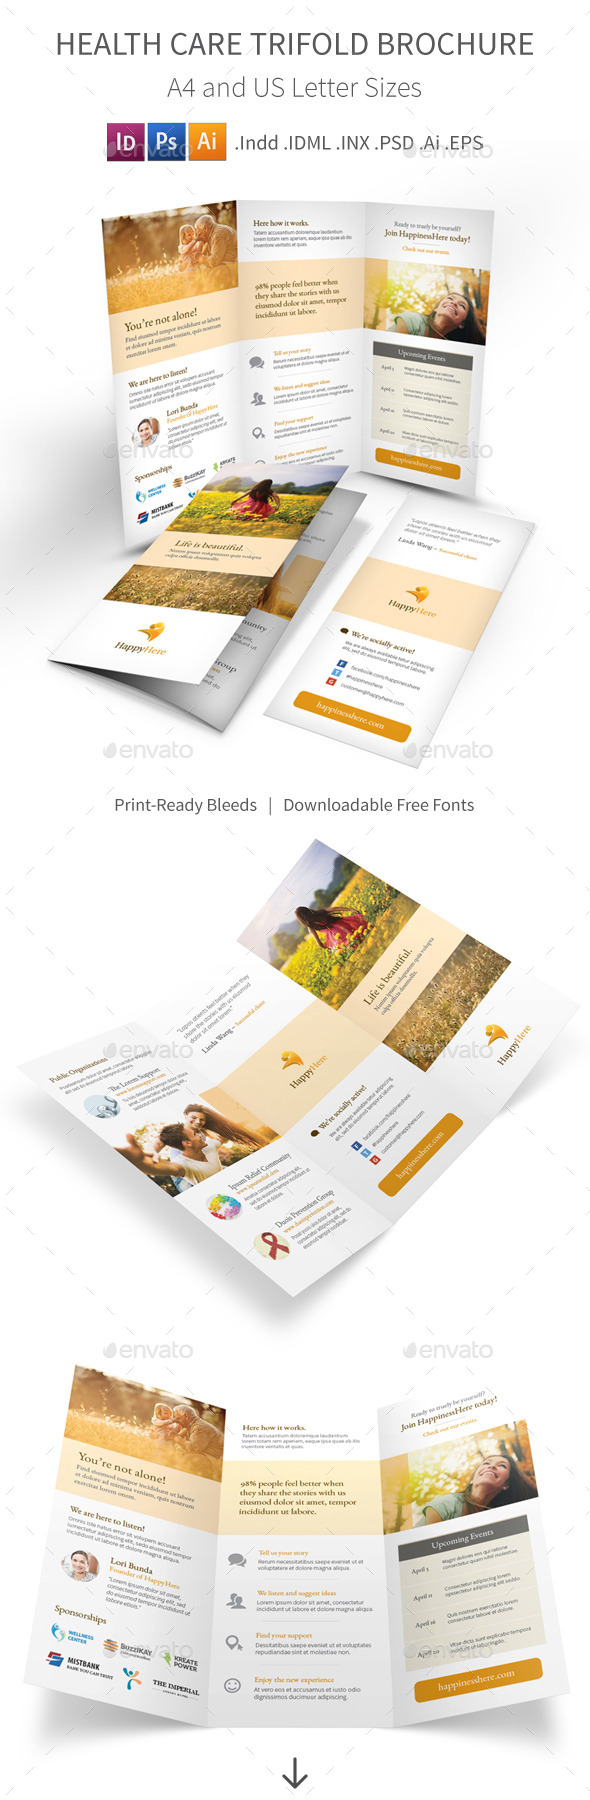 GraphicRiver Health Care Trifold Brochure 10983929